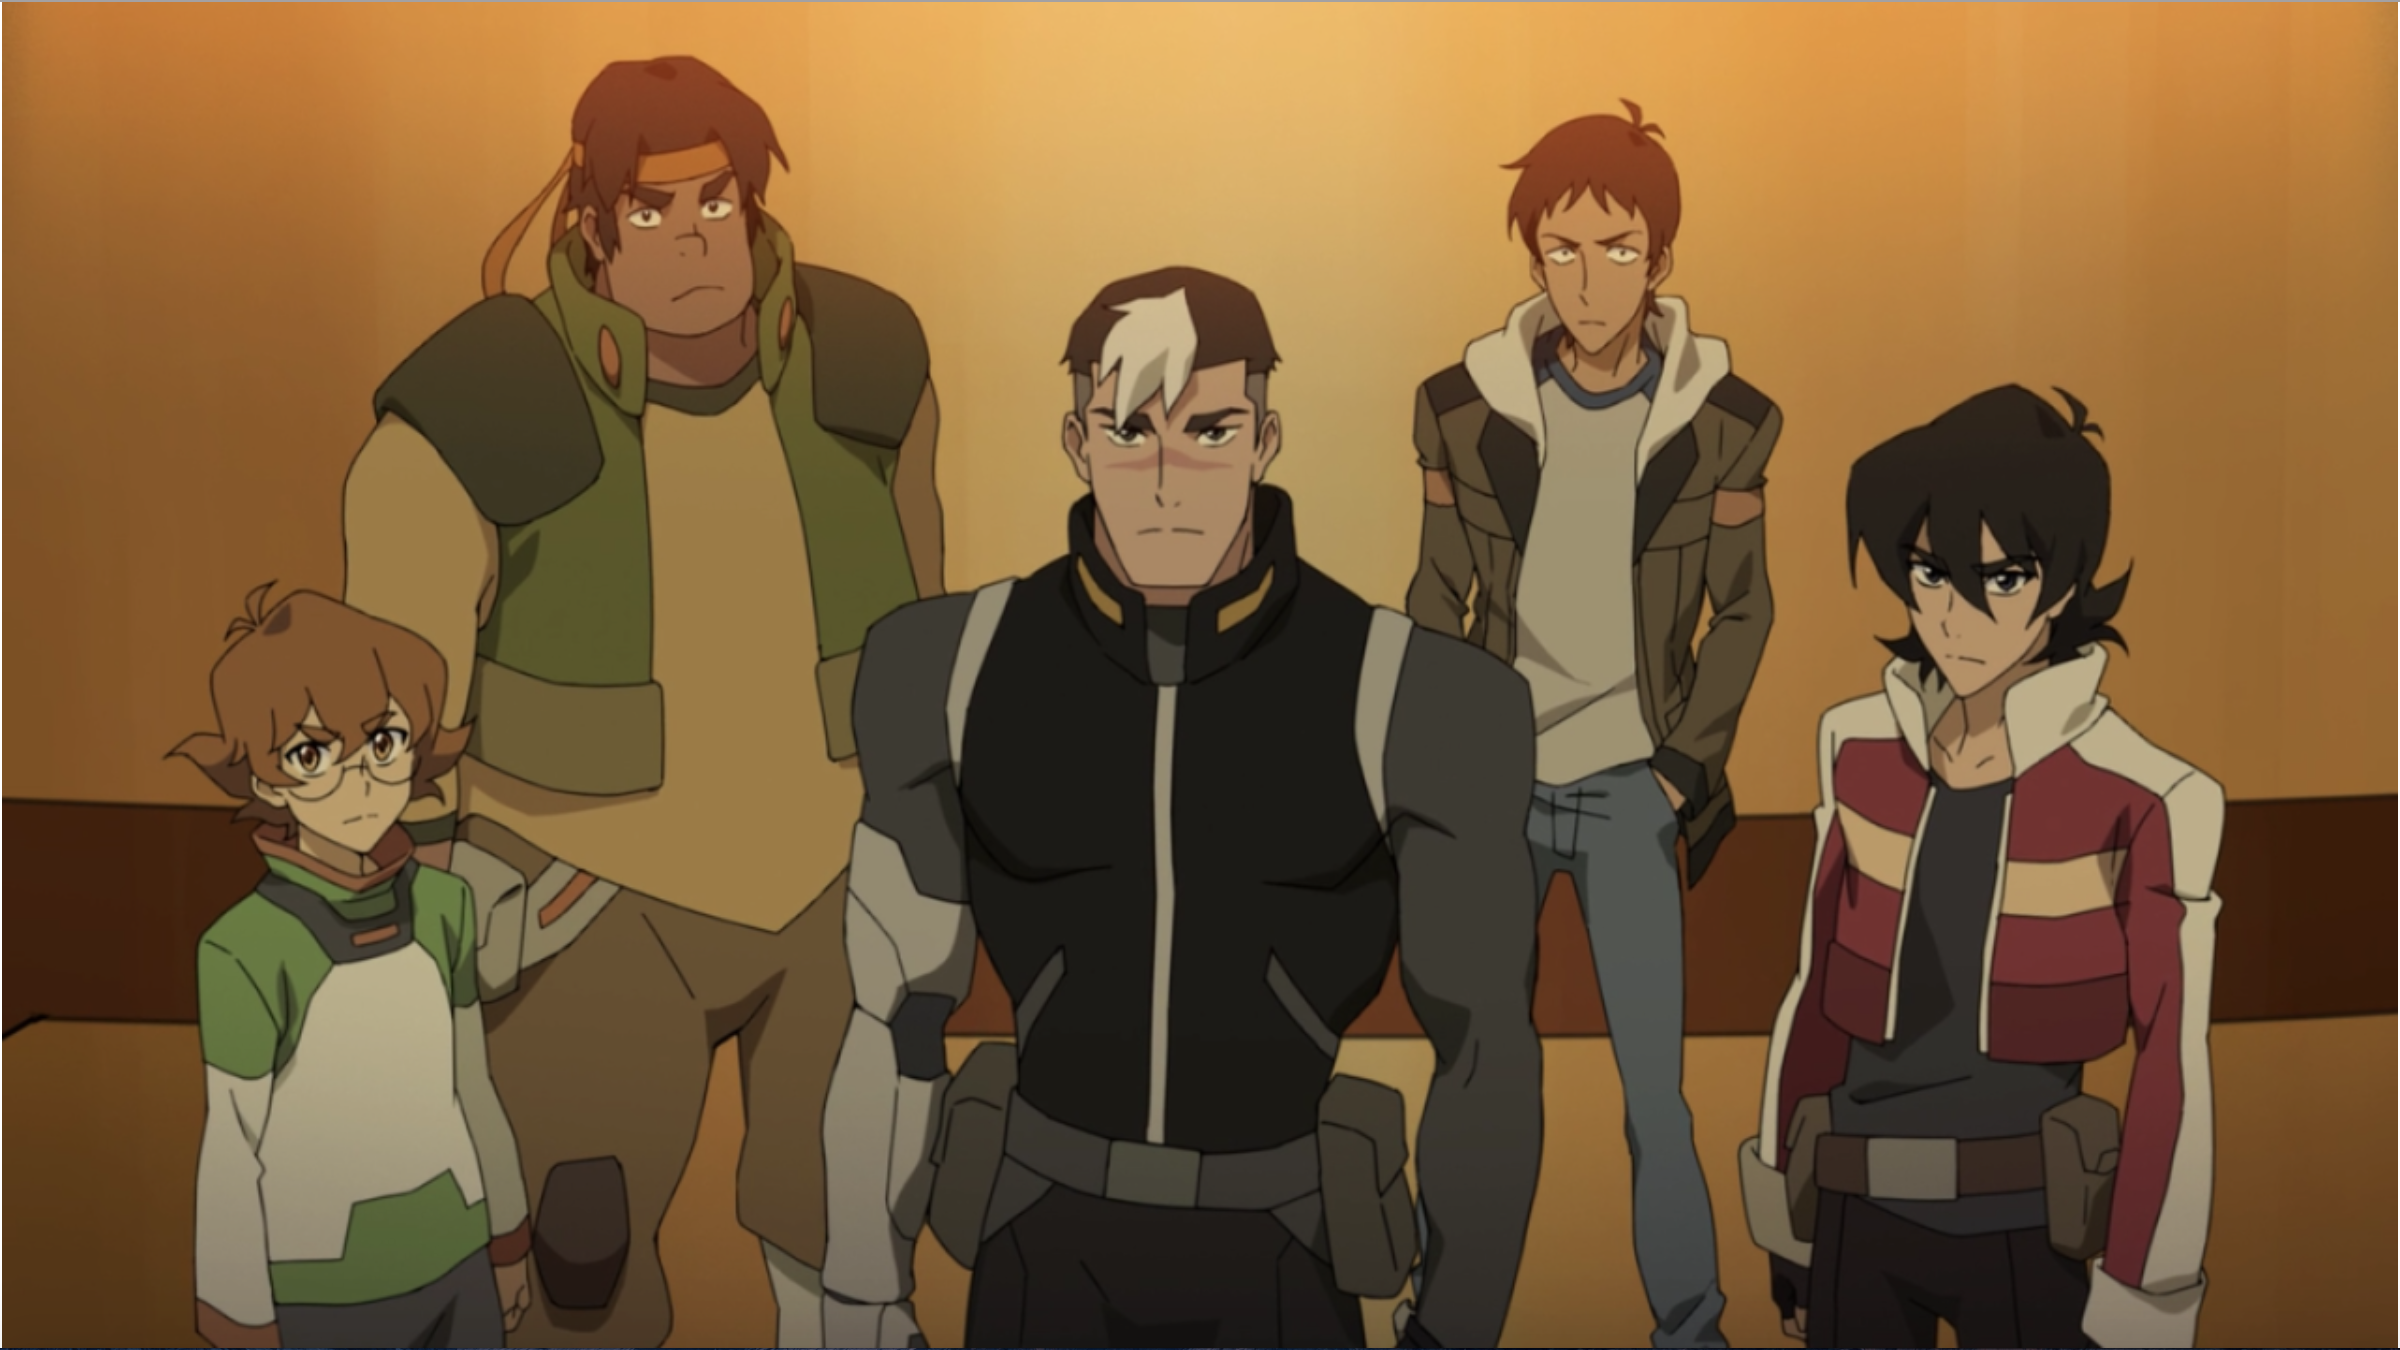 Shiro, Keith, Lance, Pidge and Hunk from Voltron Legendary